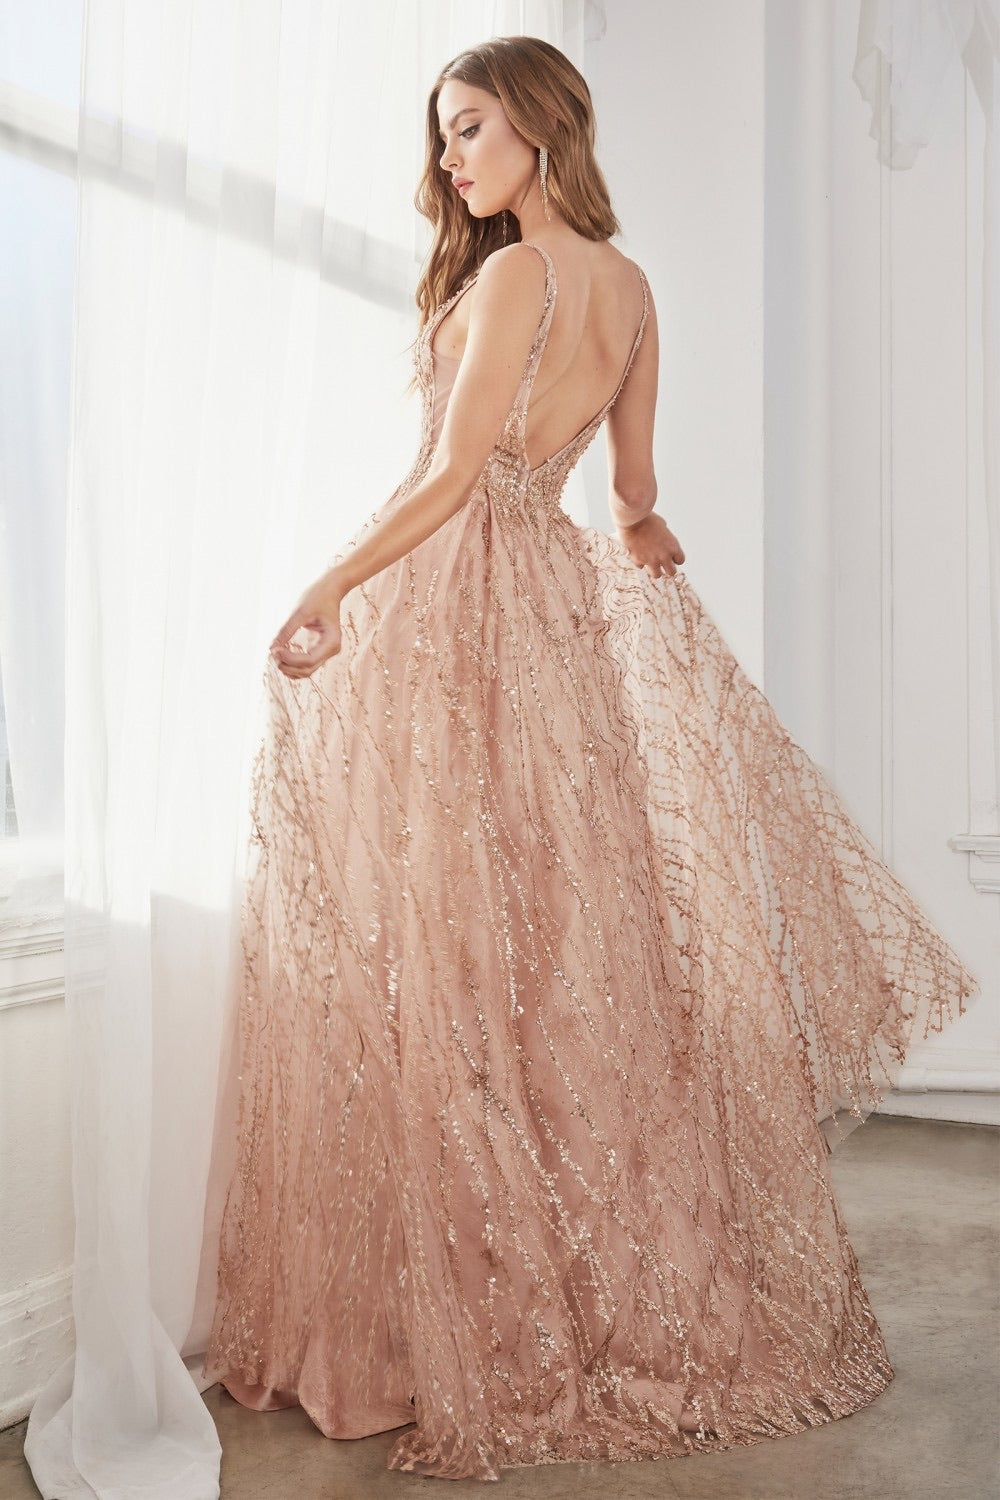 CD Angeline Rose Gold Gown